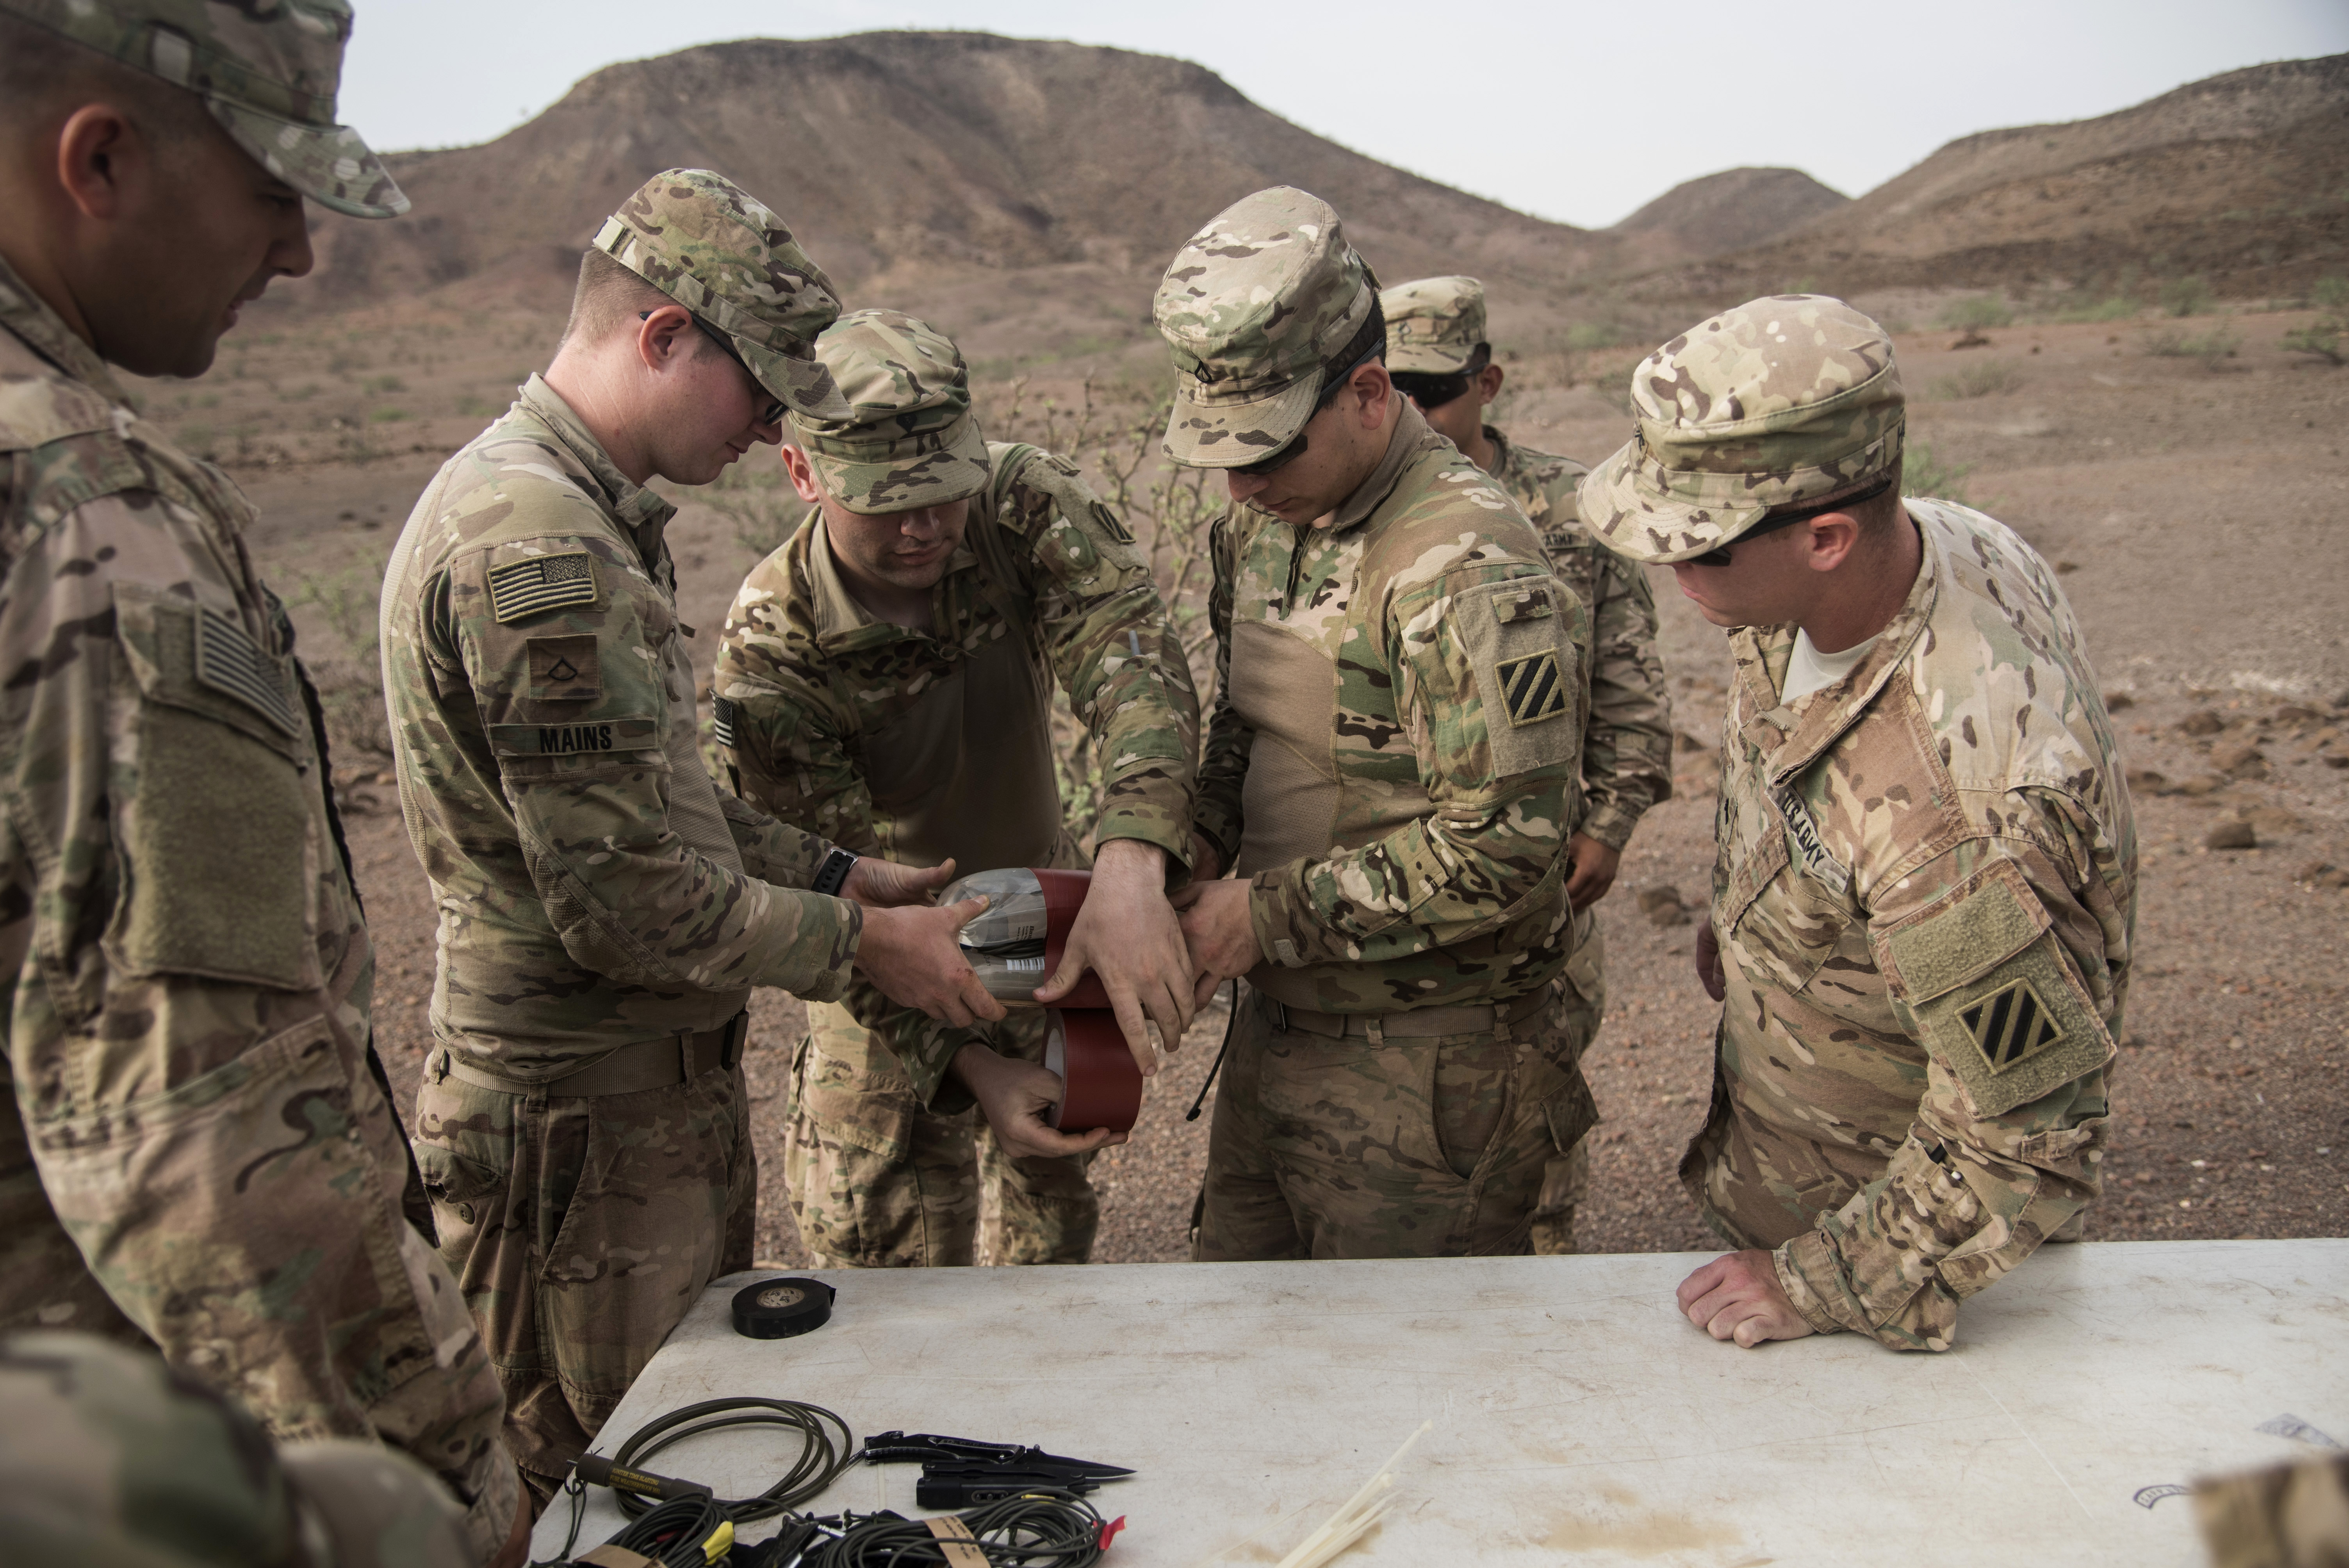 U.S. Army Soldiers from the Bravo Company, 3rd Battalion, 15th Infantry Regiment, create their water explosive packs for demolition training, Aug. 30, 2016, in Arta, Djibouti.  Bravo Co., 3/15 Inf. Rgt., from Fort Stewart, Ga., serves as the East Africa Response Force assigned to Combined Joint Task Force-Horn of Africa to provide rapid response and security to protect embassies and foreign assets in the area of responsibility of CJTF-HOA. (U.S. Air Force photo by Staff Sgt. Tiffany DeNault)